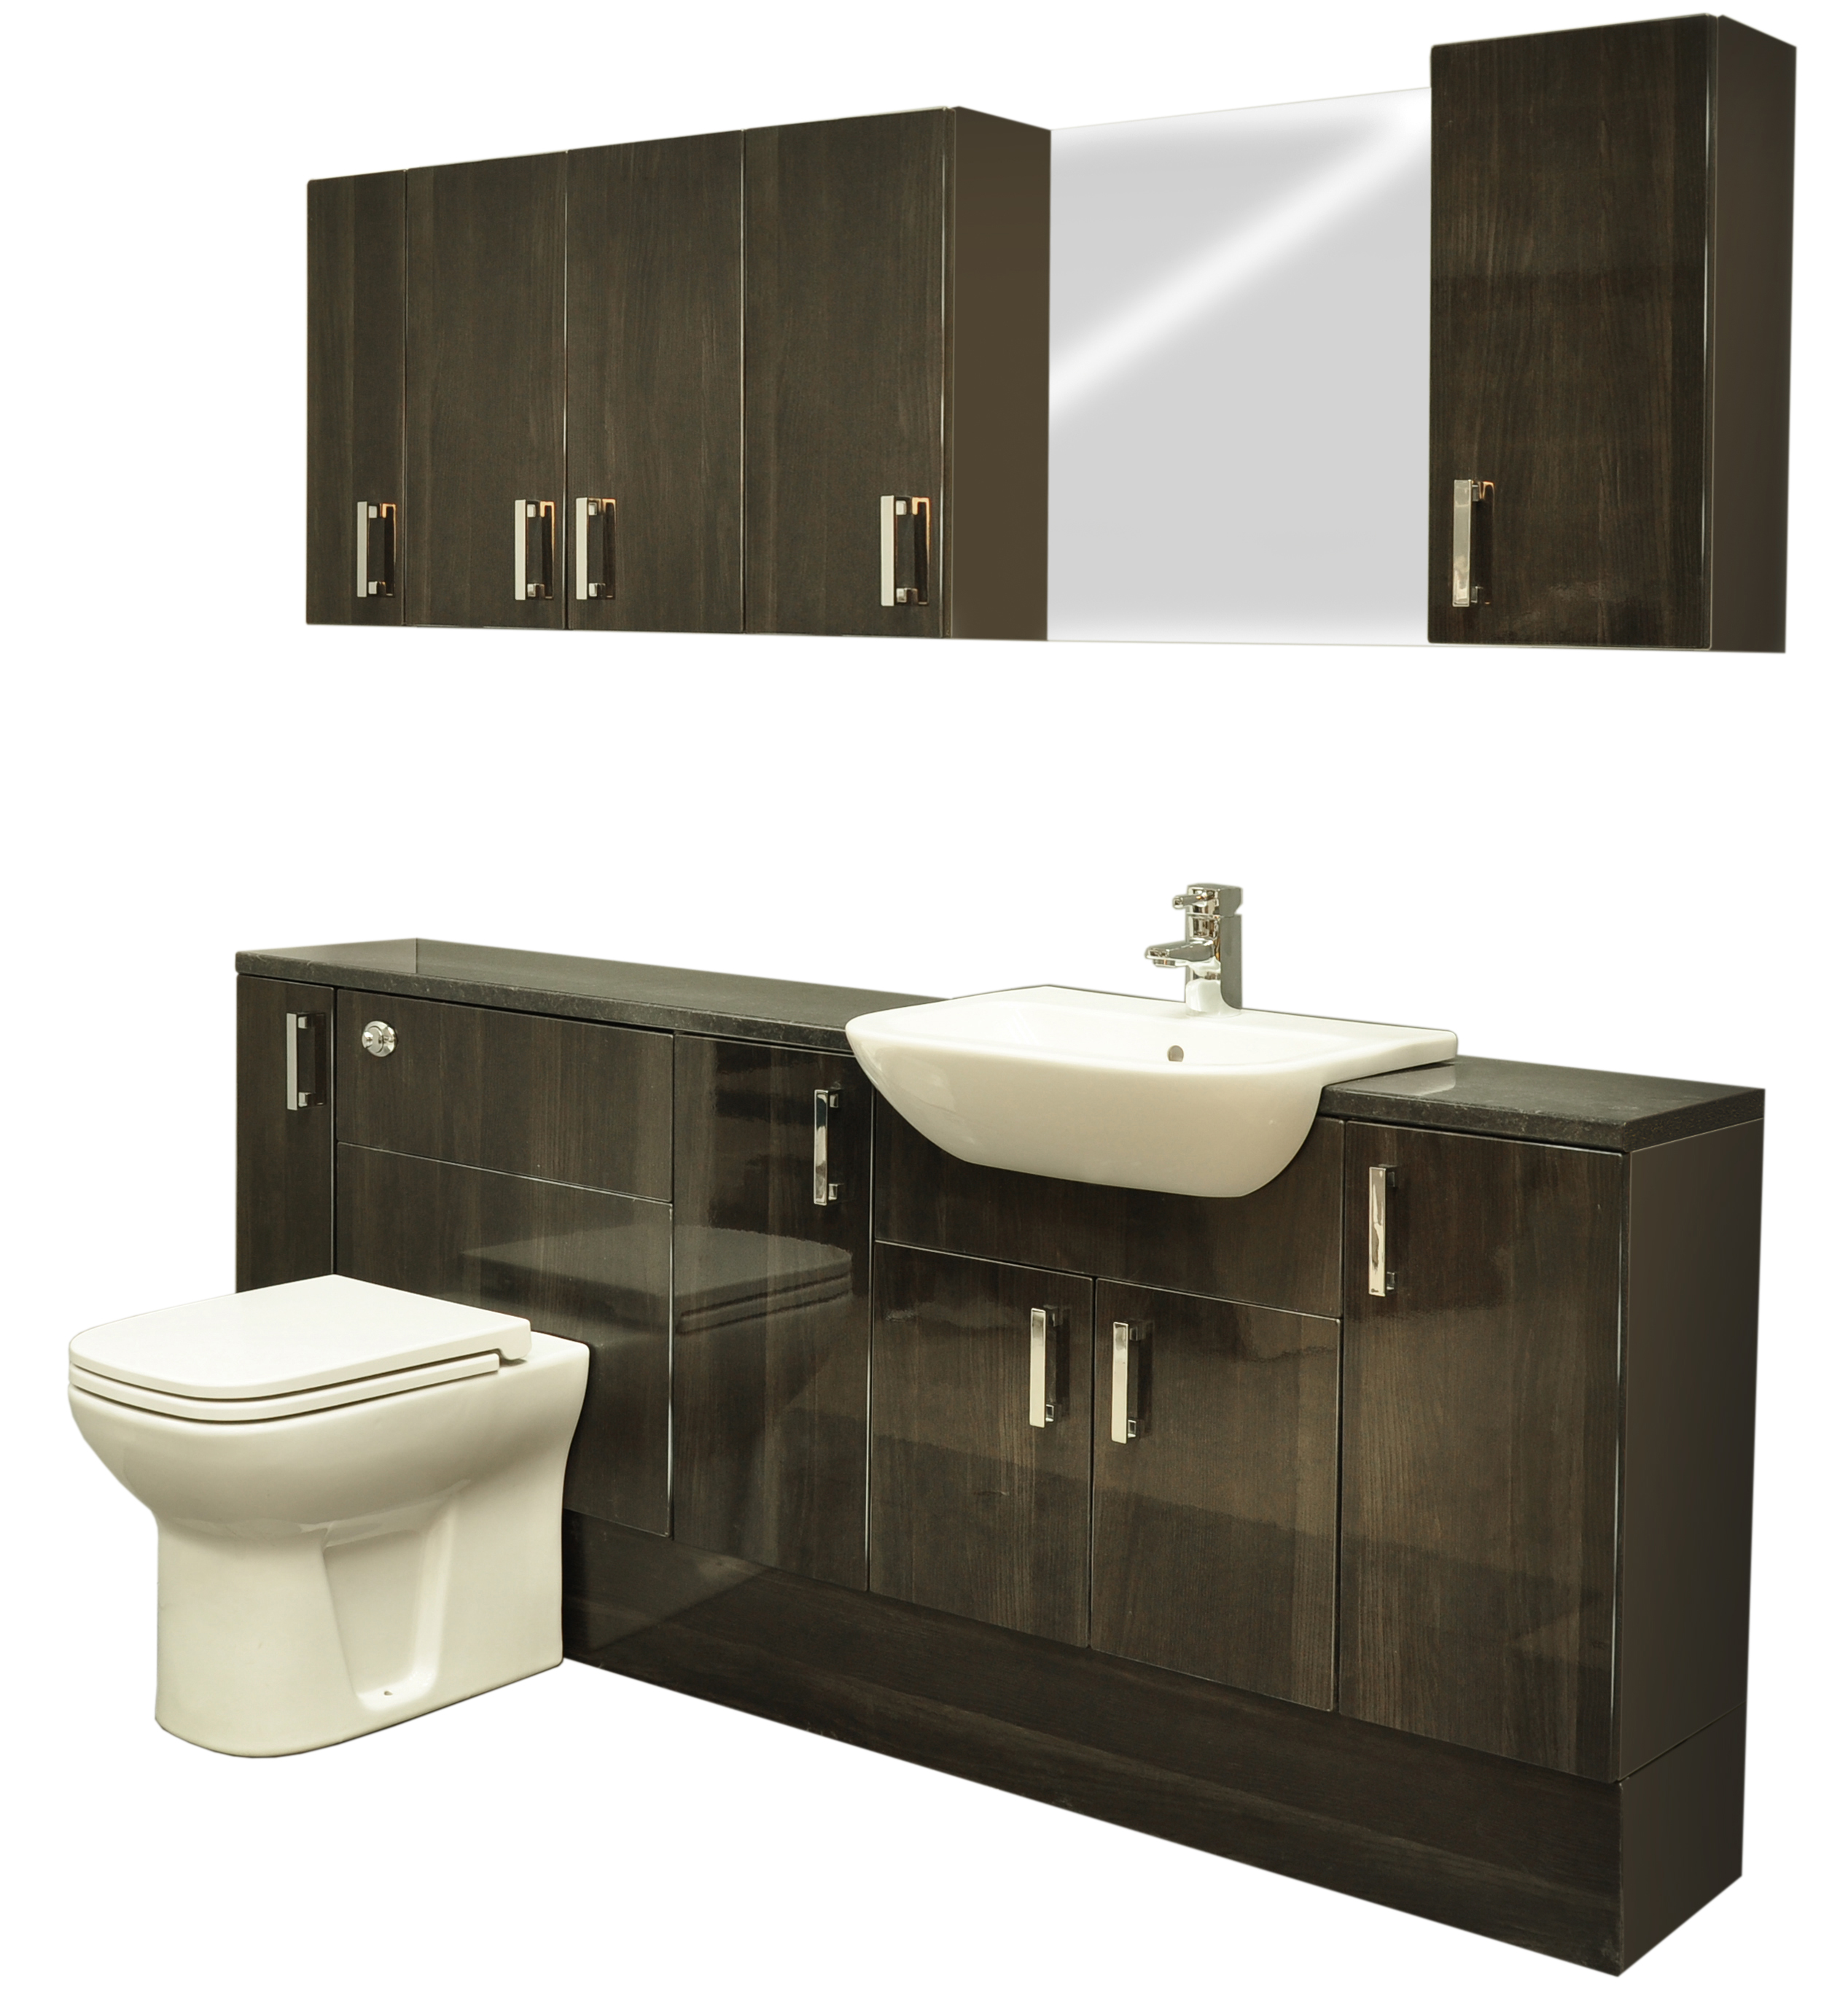 Lastest Home Bathroom Furniture All Furniture Ranges Ramia Gloss Grey